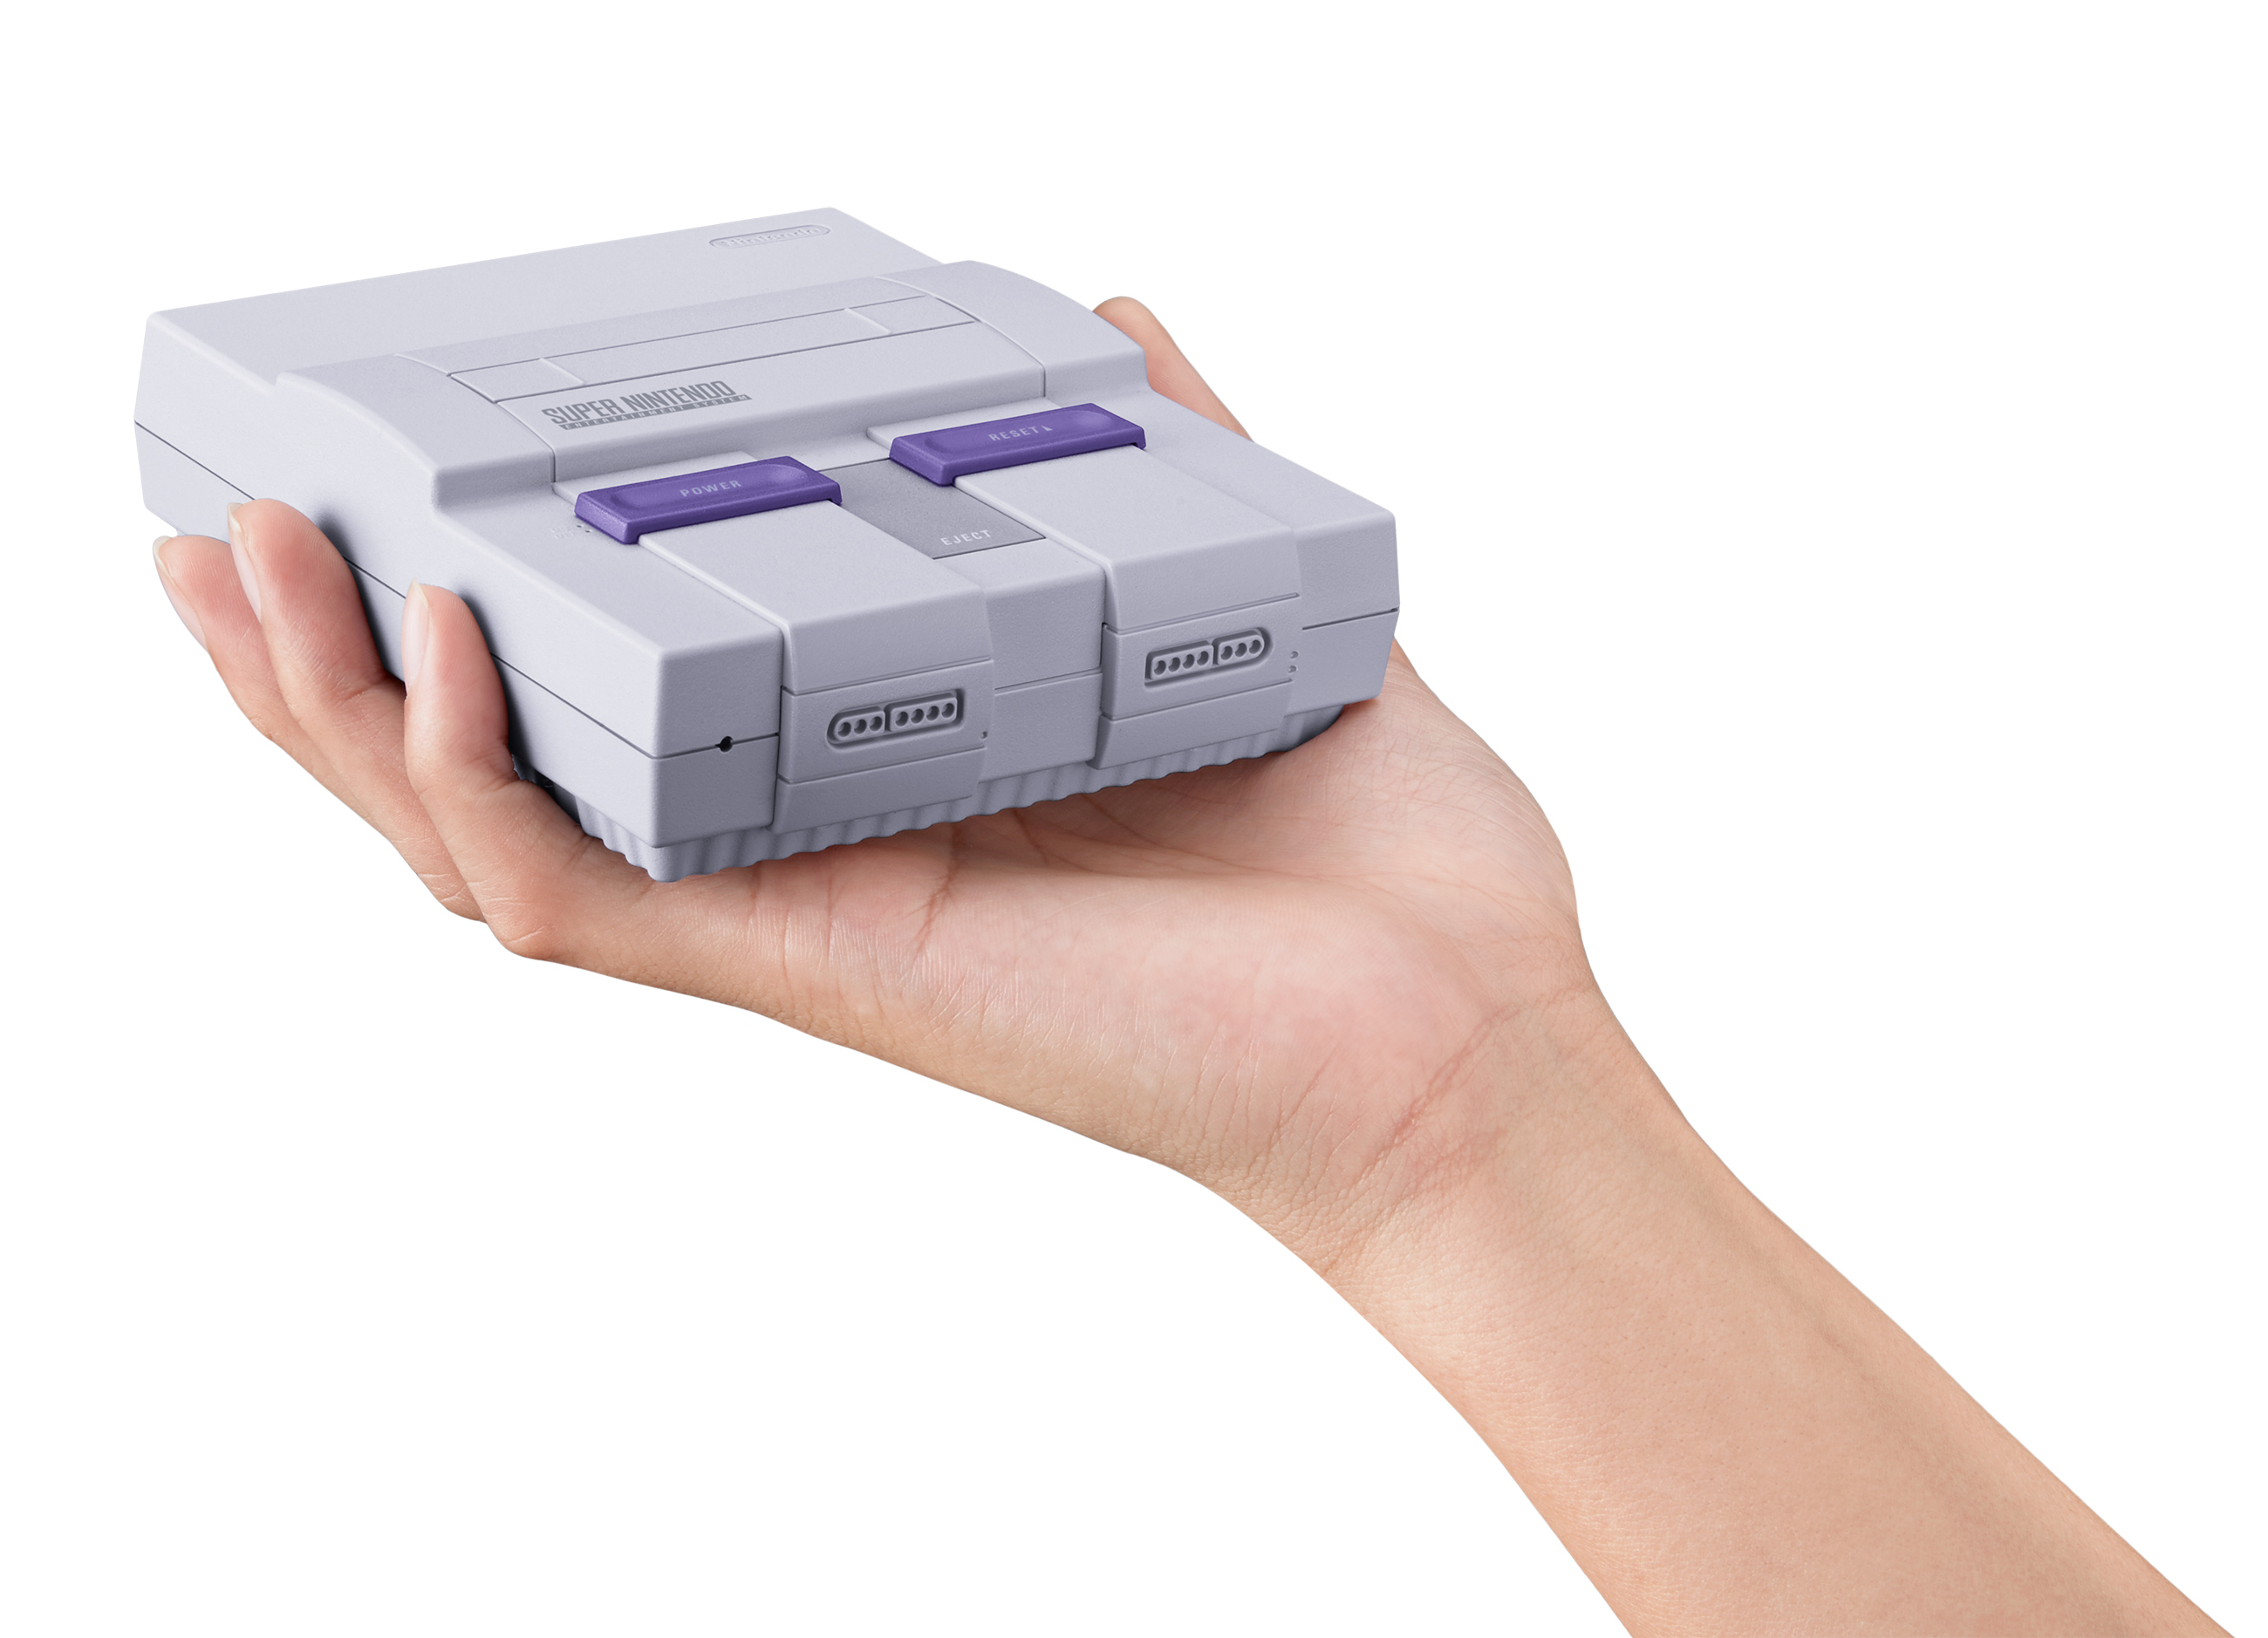 Super Nintendo Classic Edition (aka, SNES Mini, Super NES Mini)